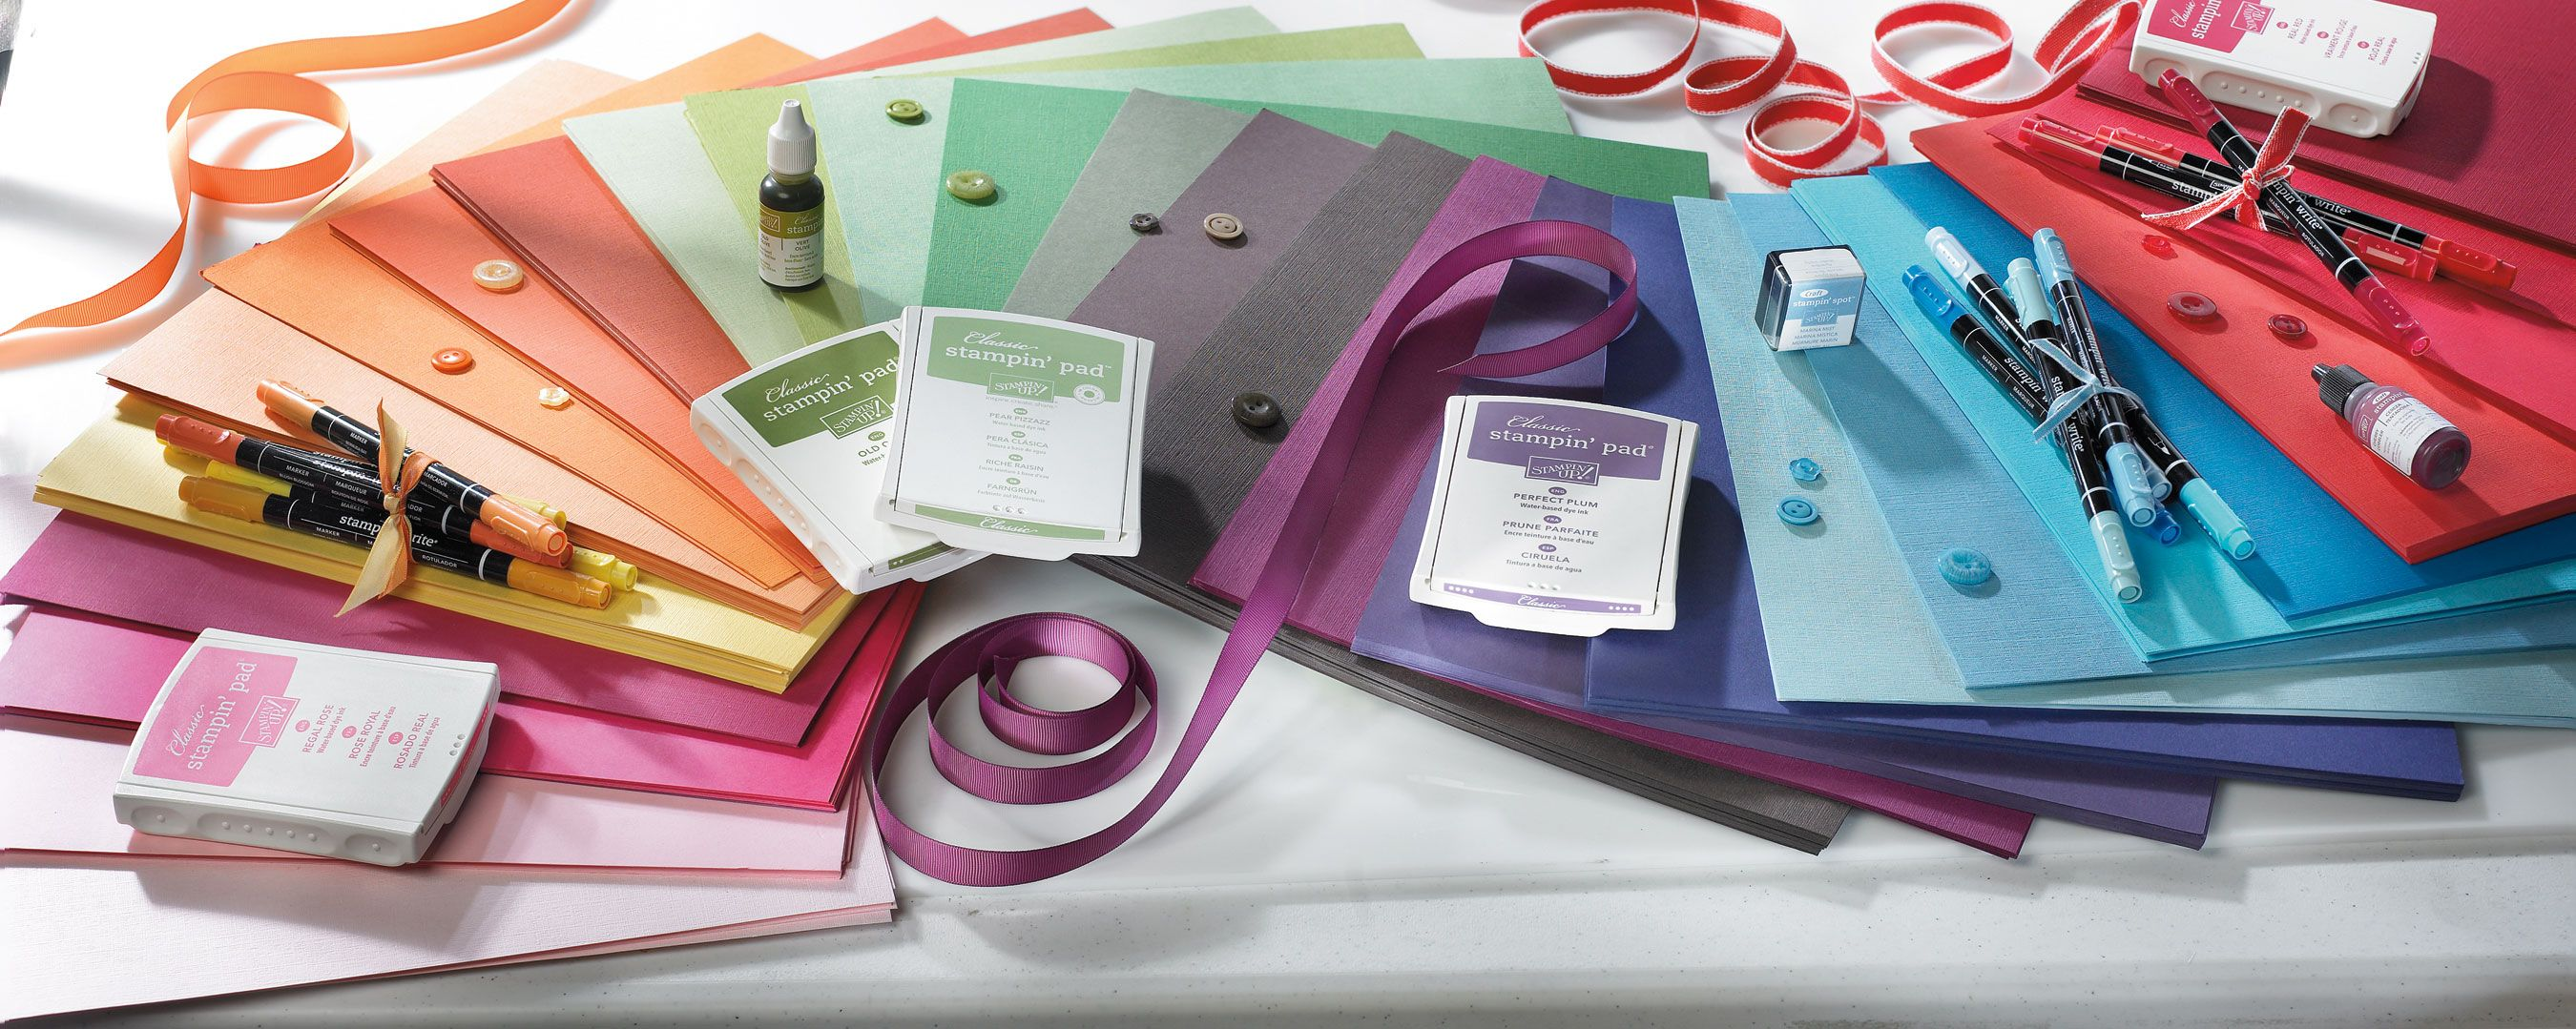 Find all your supplies for Scrapbooking on Artsy Central at great prices.